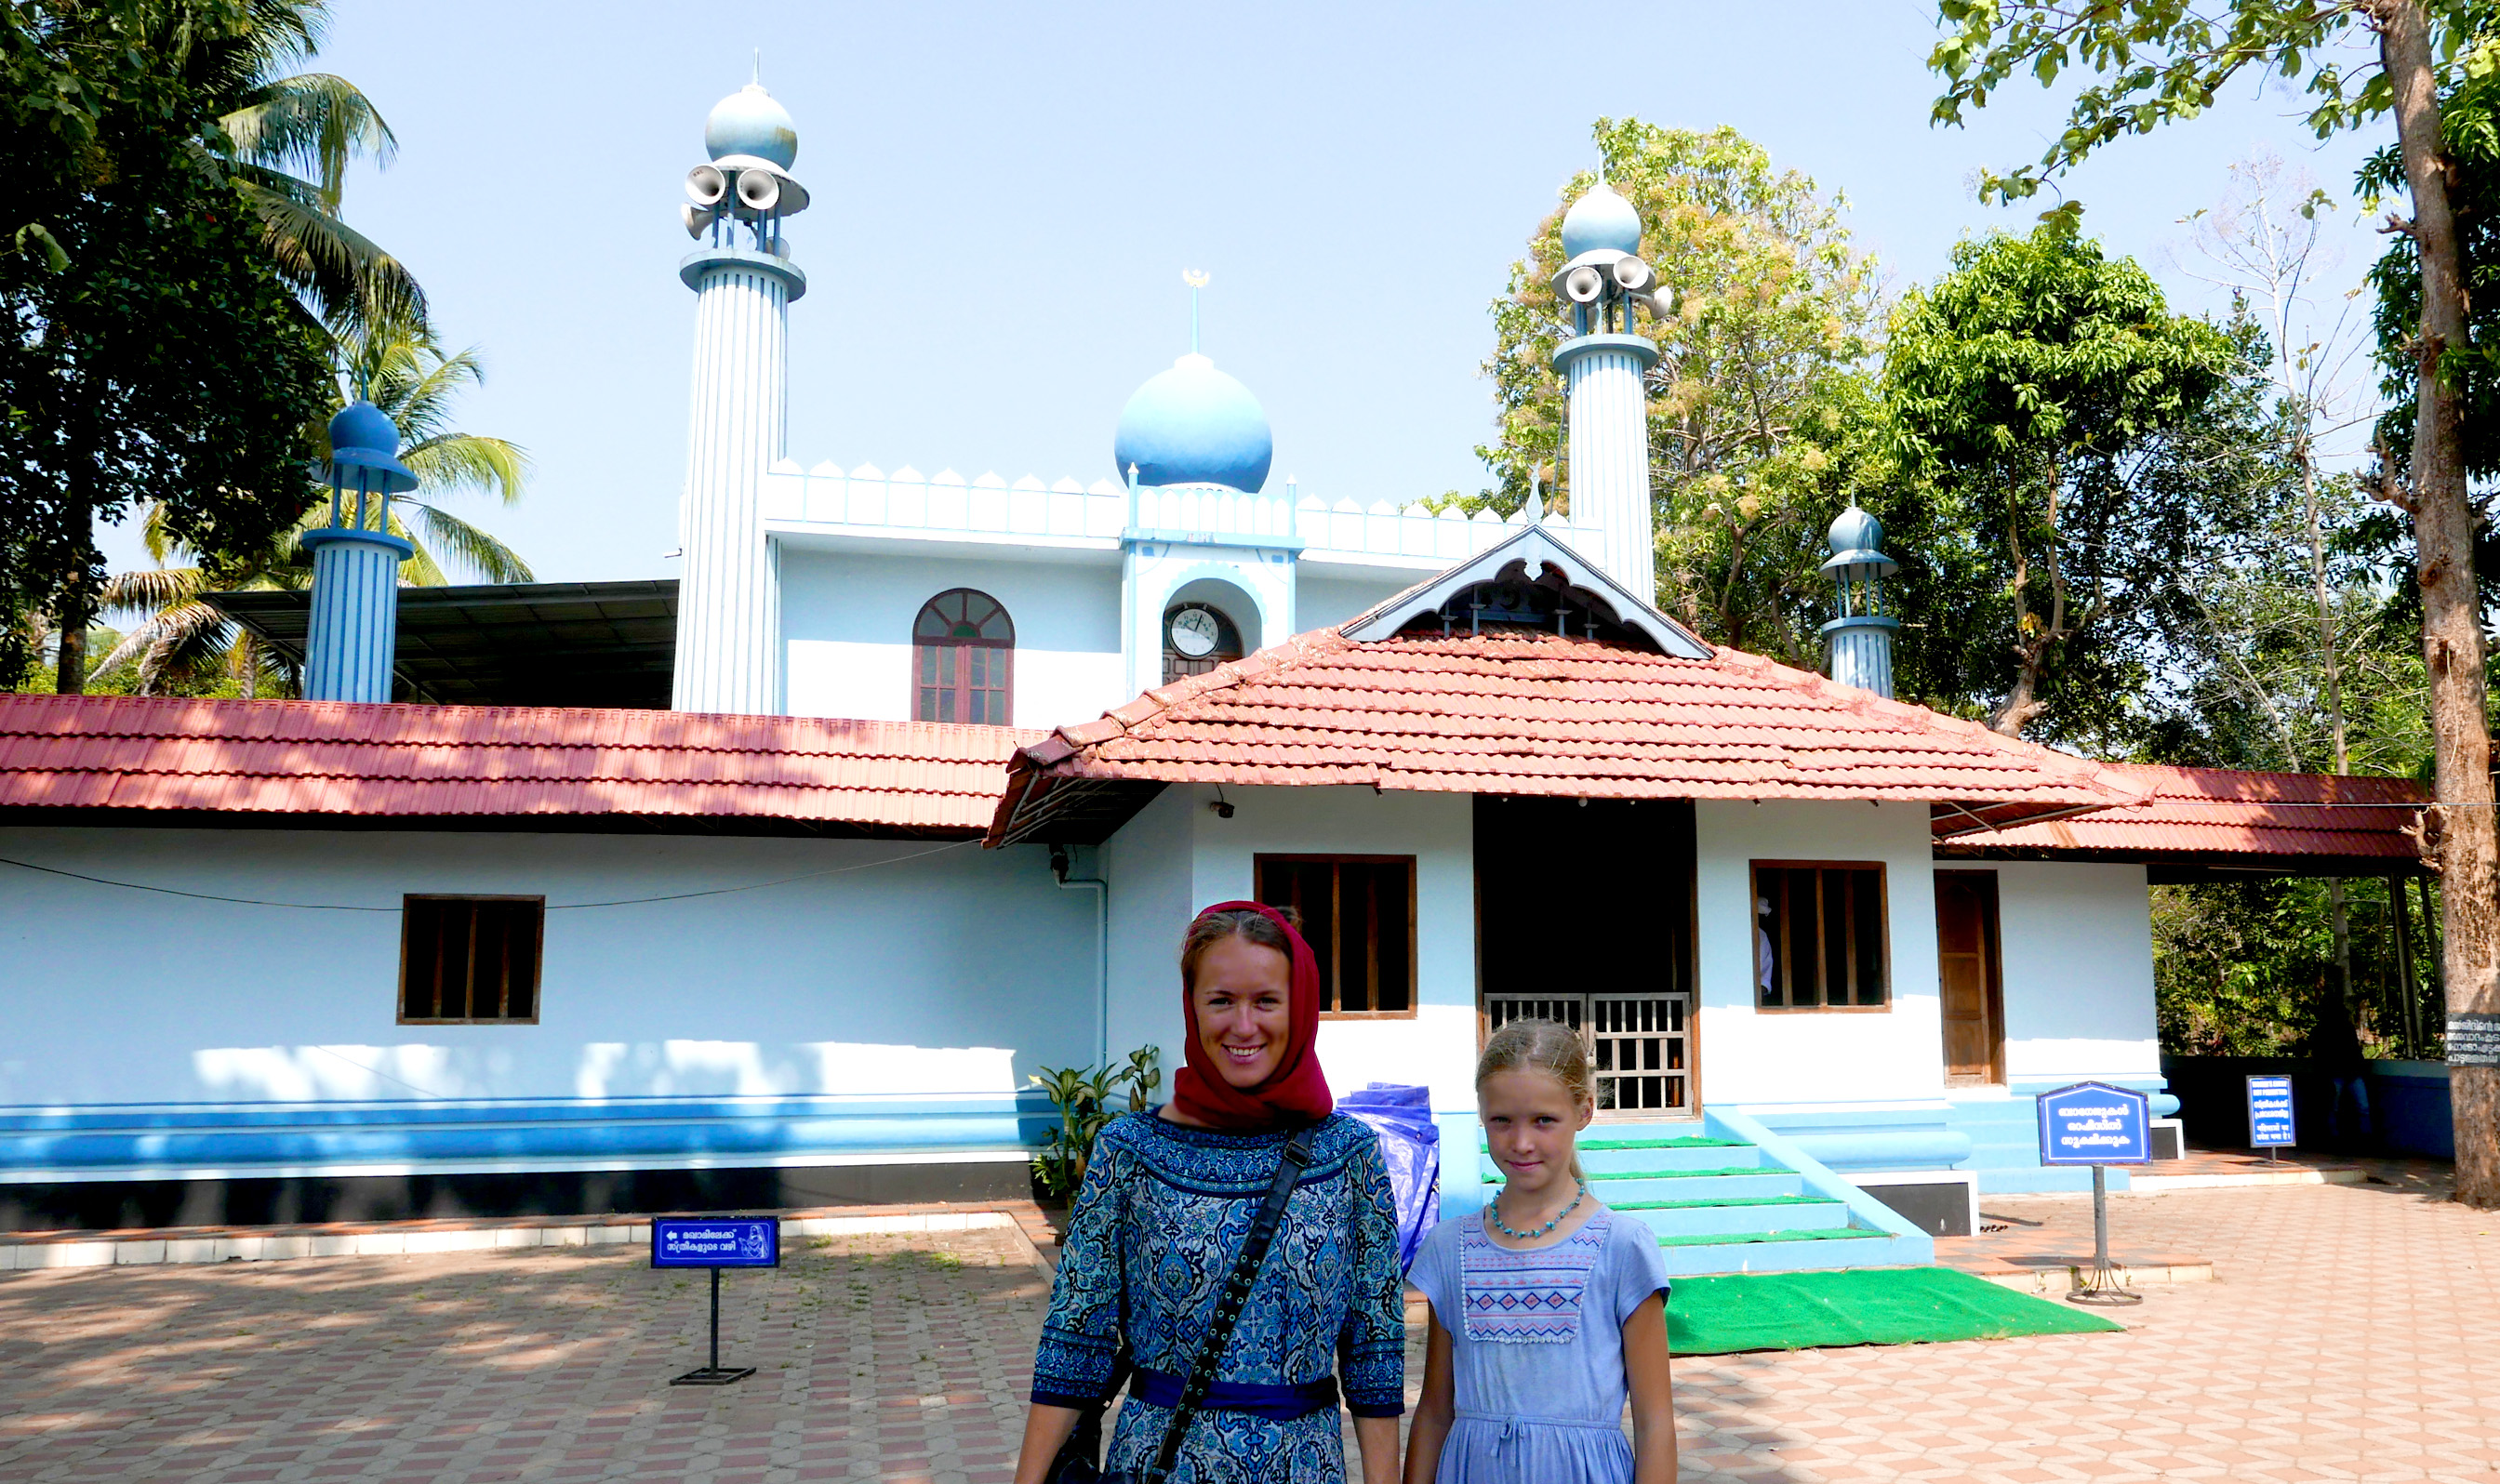 the oldest mosk in india kerala